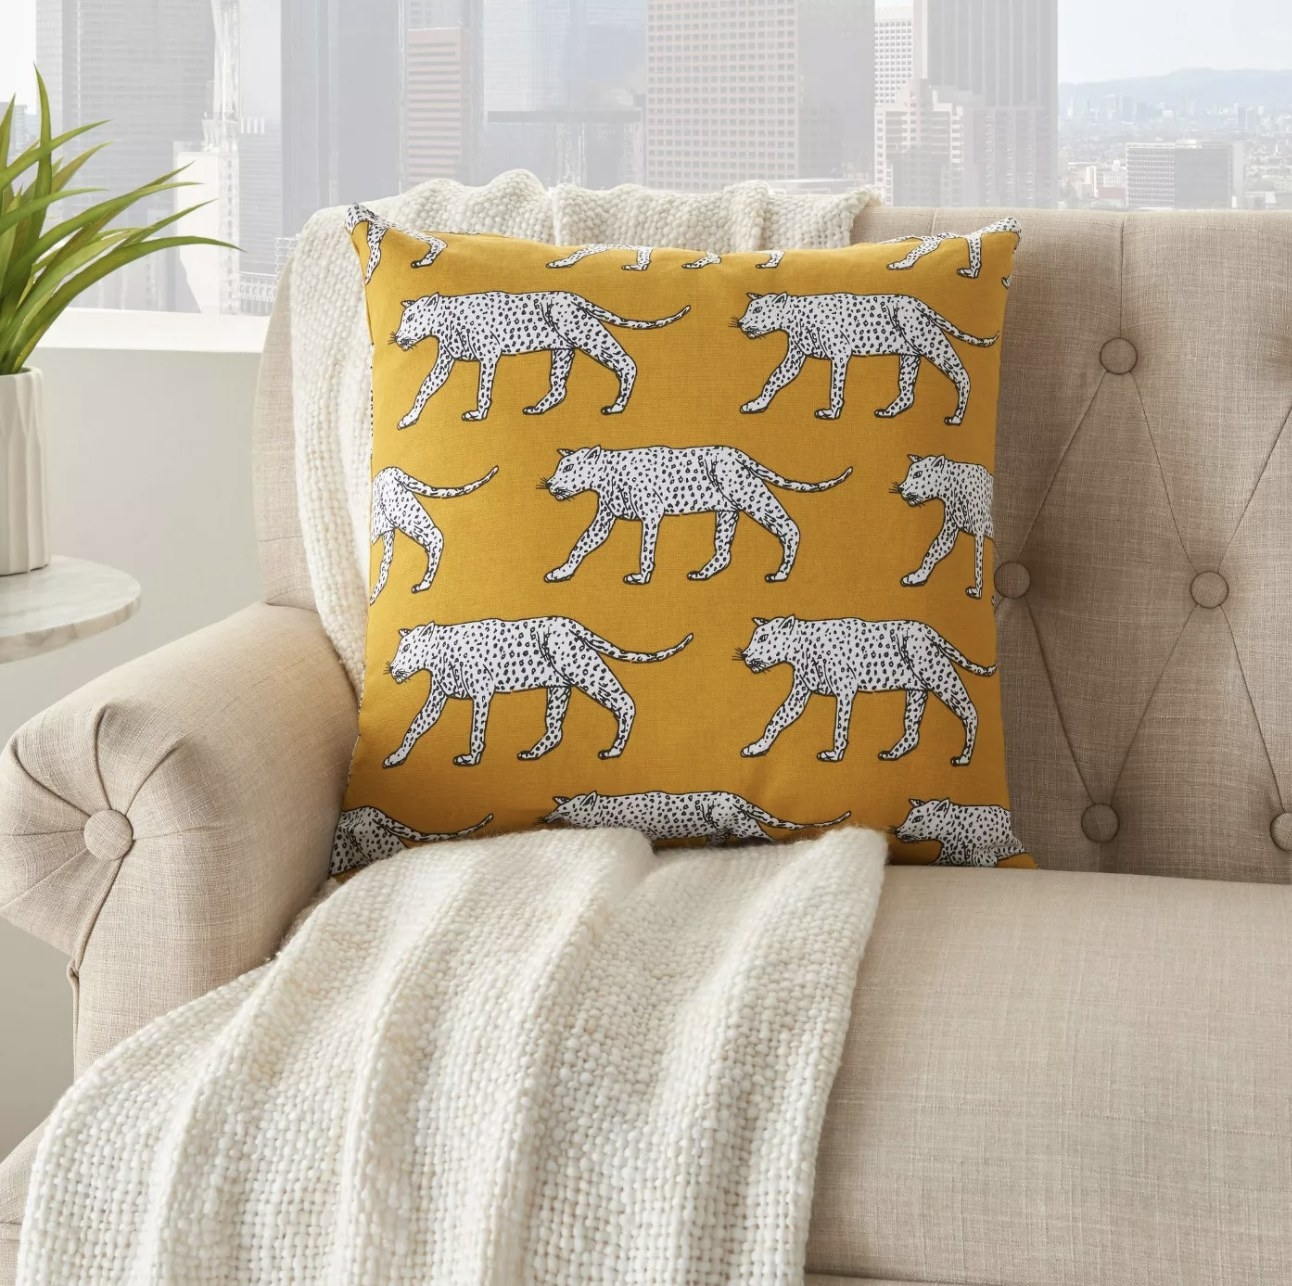 Yellow pillow styled on couch